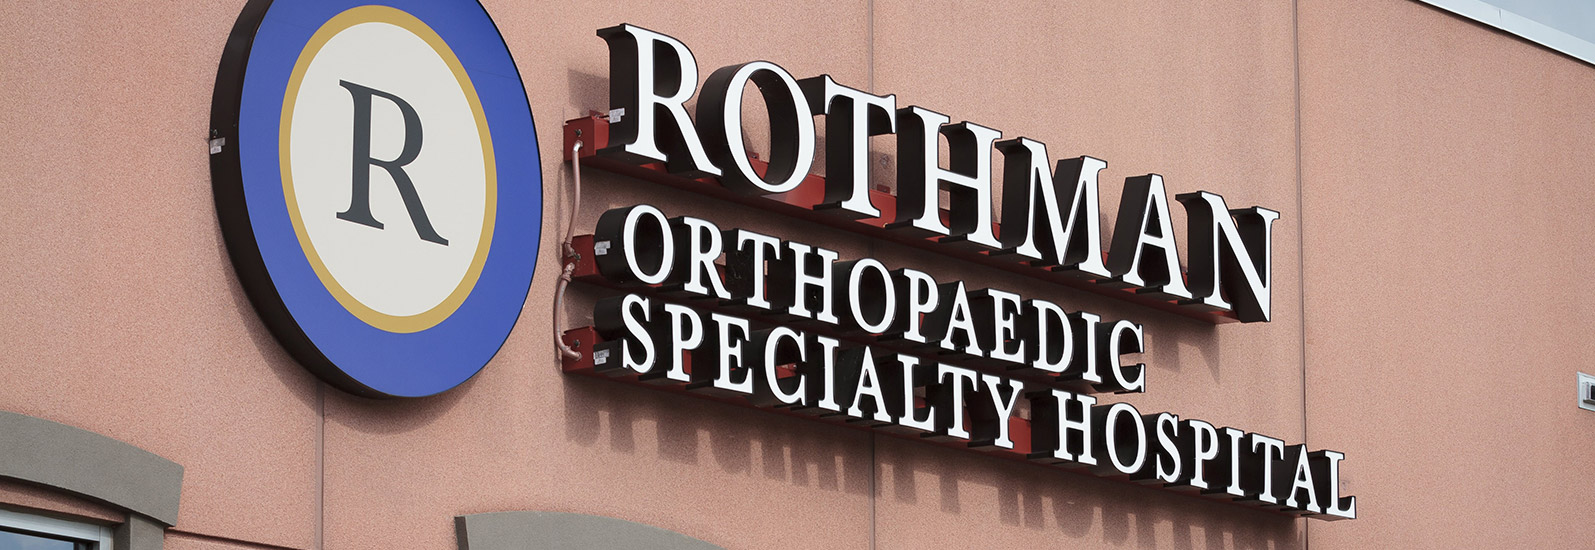 Home Page - Rothman Orthopaedic Specialty Hospital